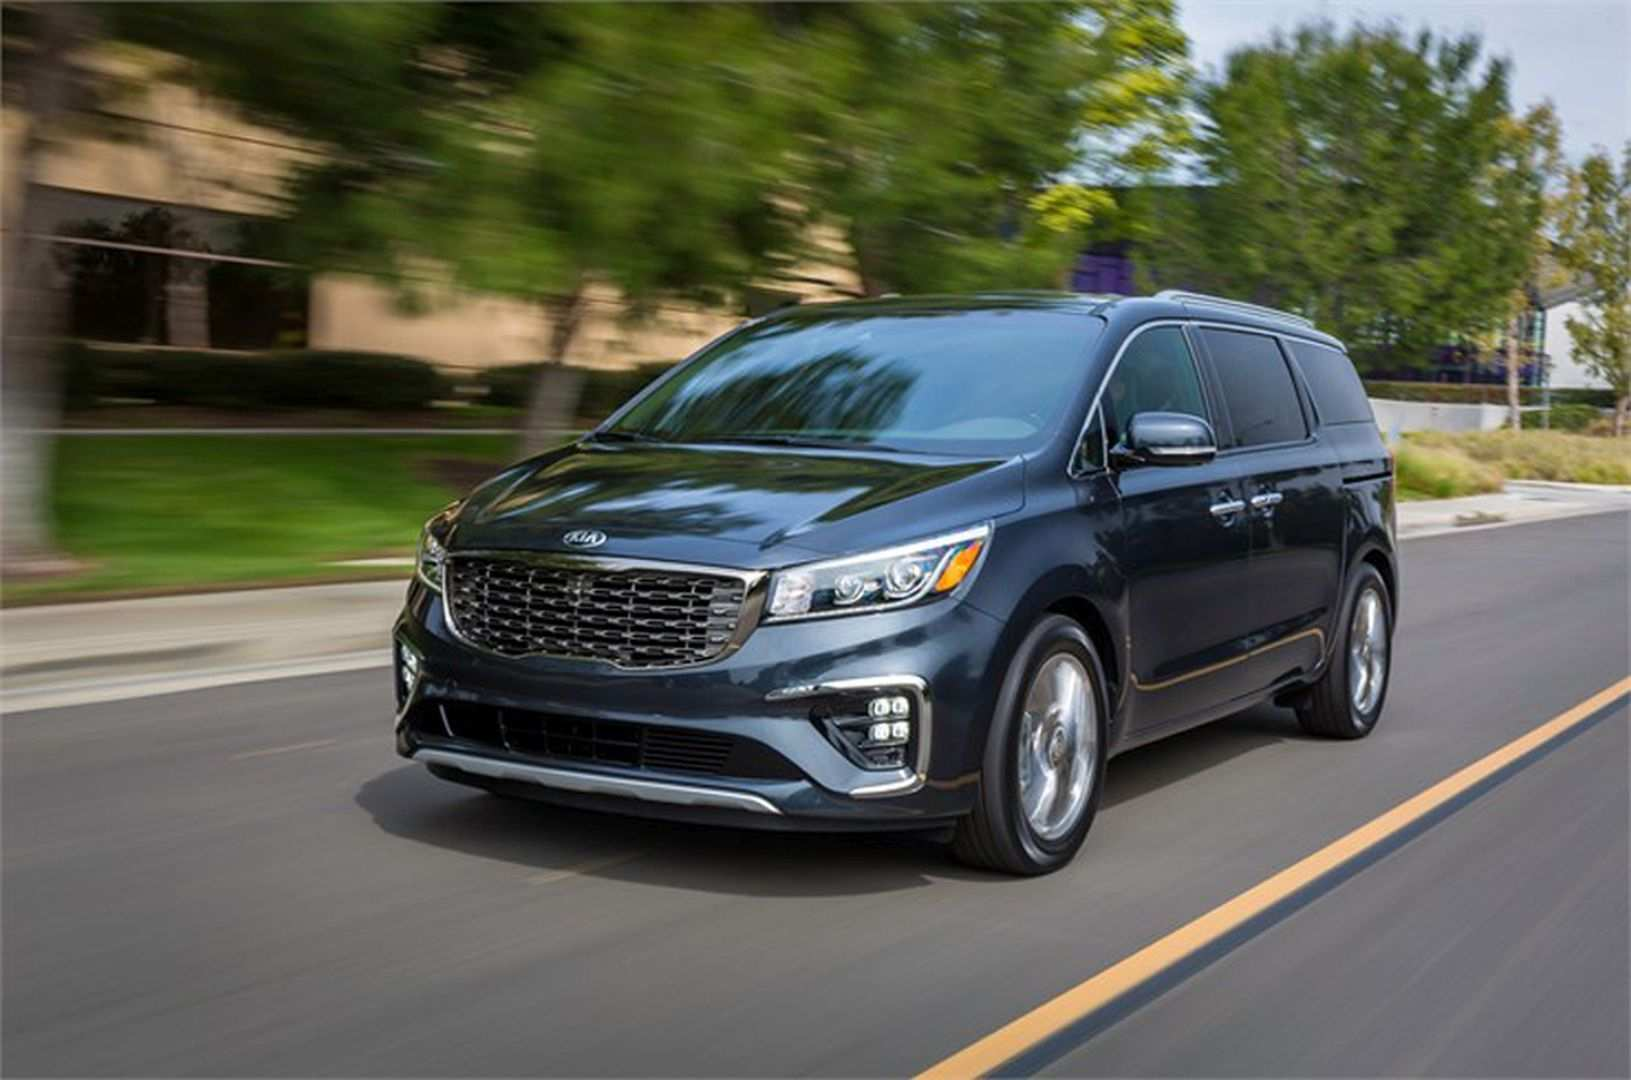 83 Best 2020 Kia Carnival Price And Release Date